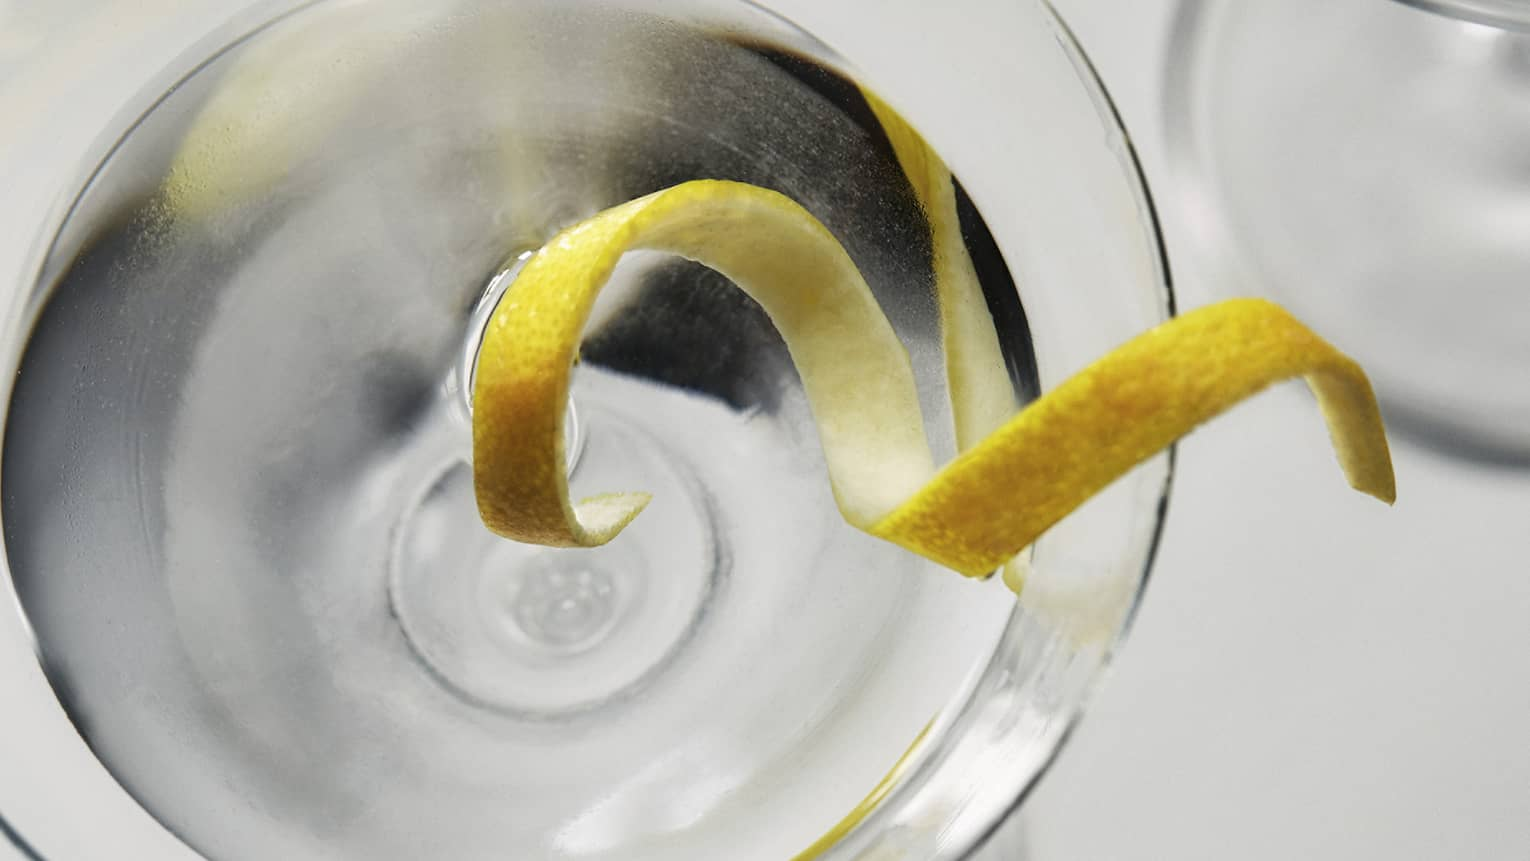 Aerial view of curled lemon rind in vodka martini, glass